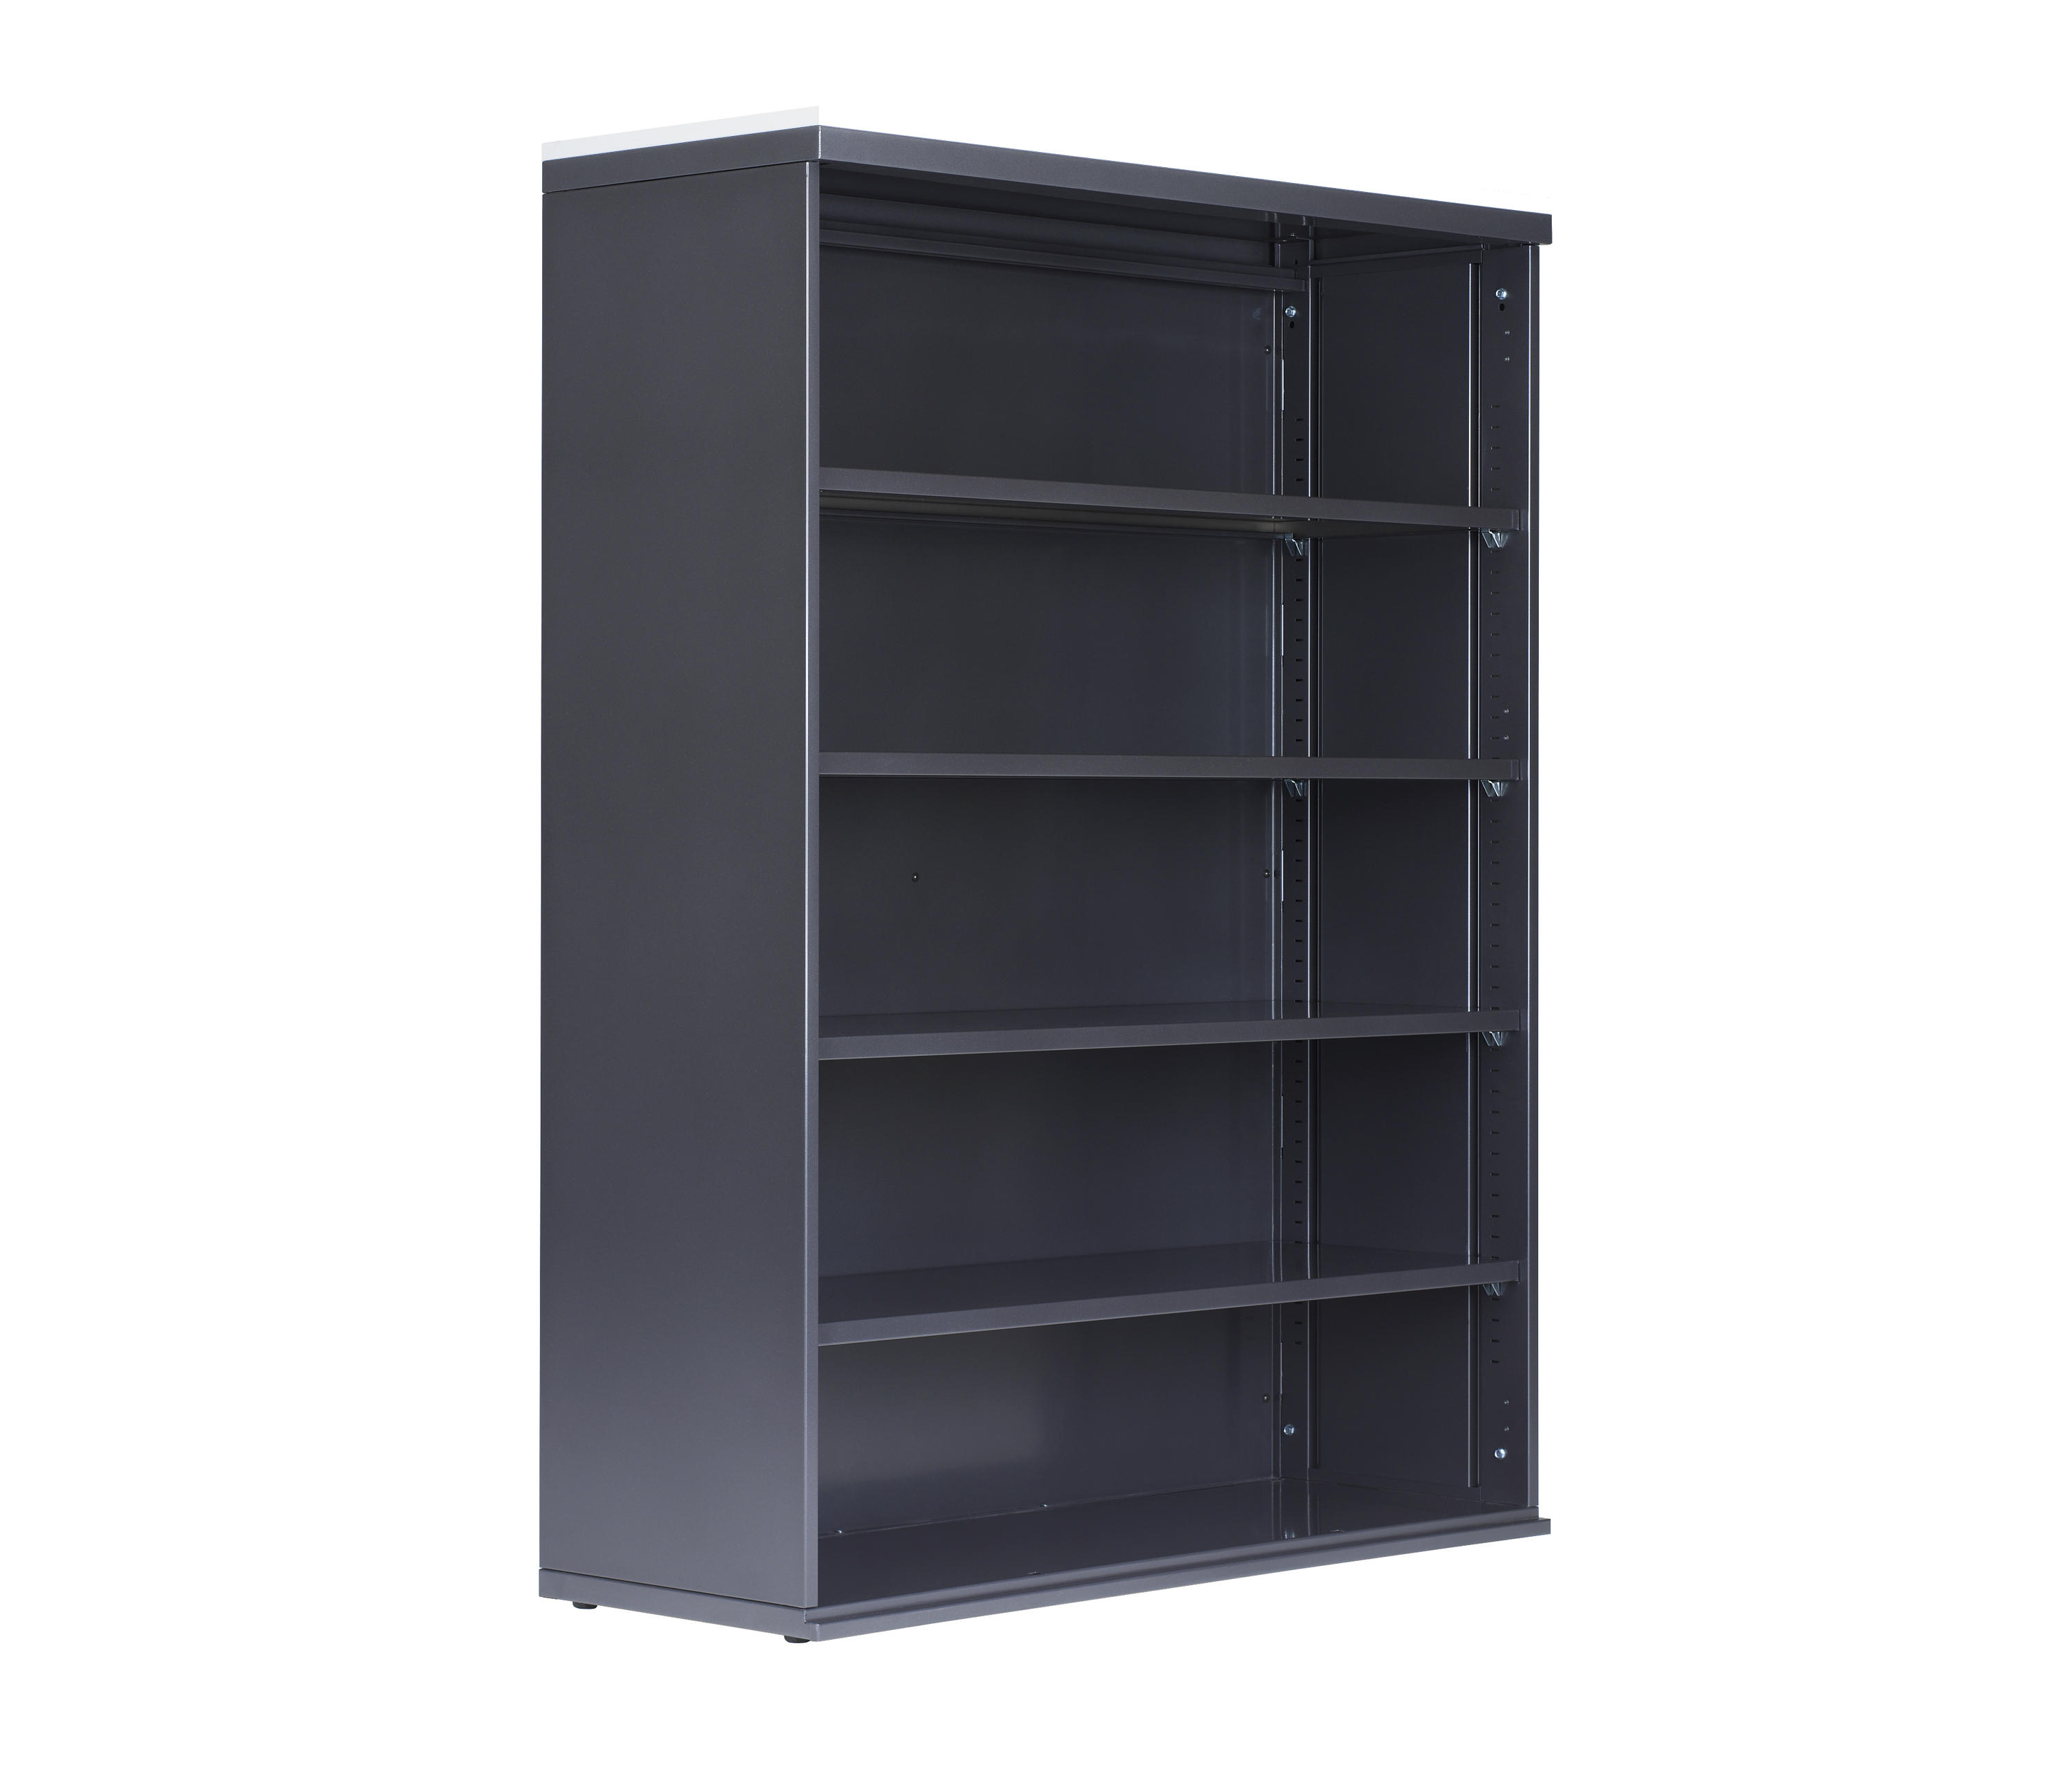 plenum office shelving systems from dynamobel architonic